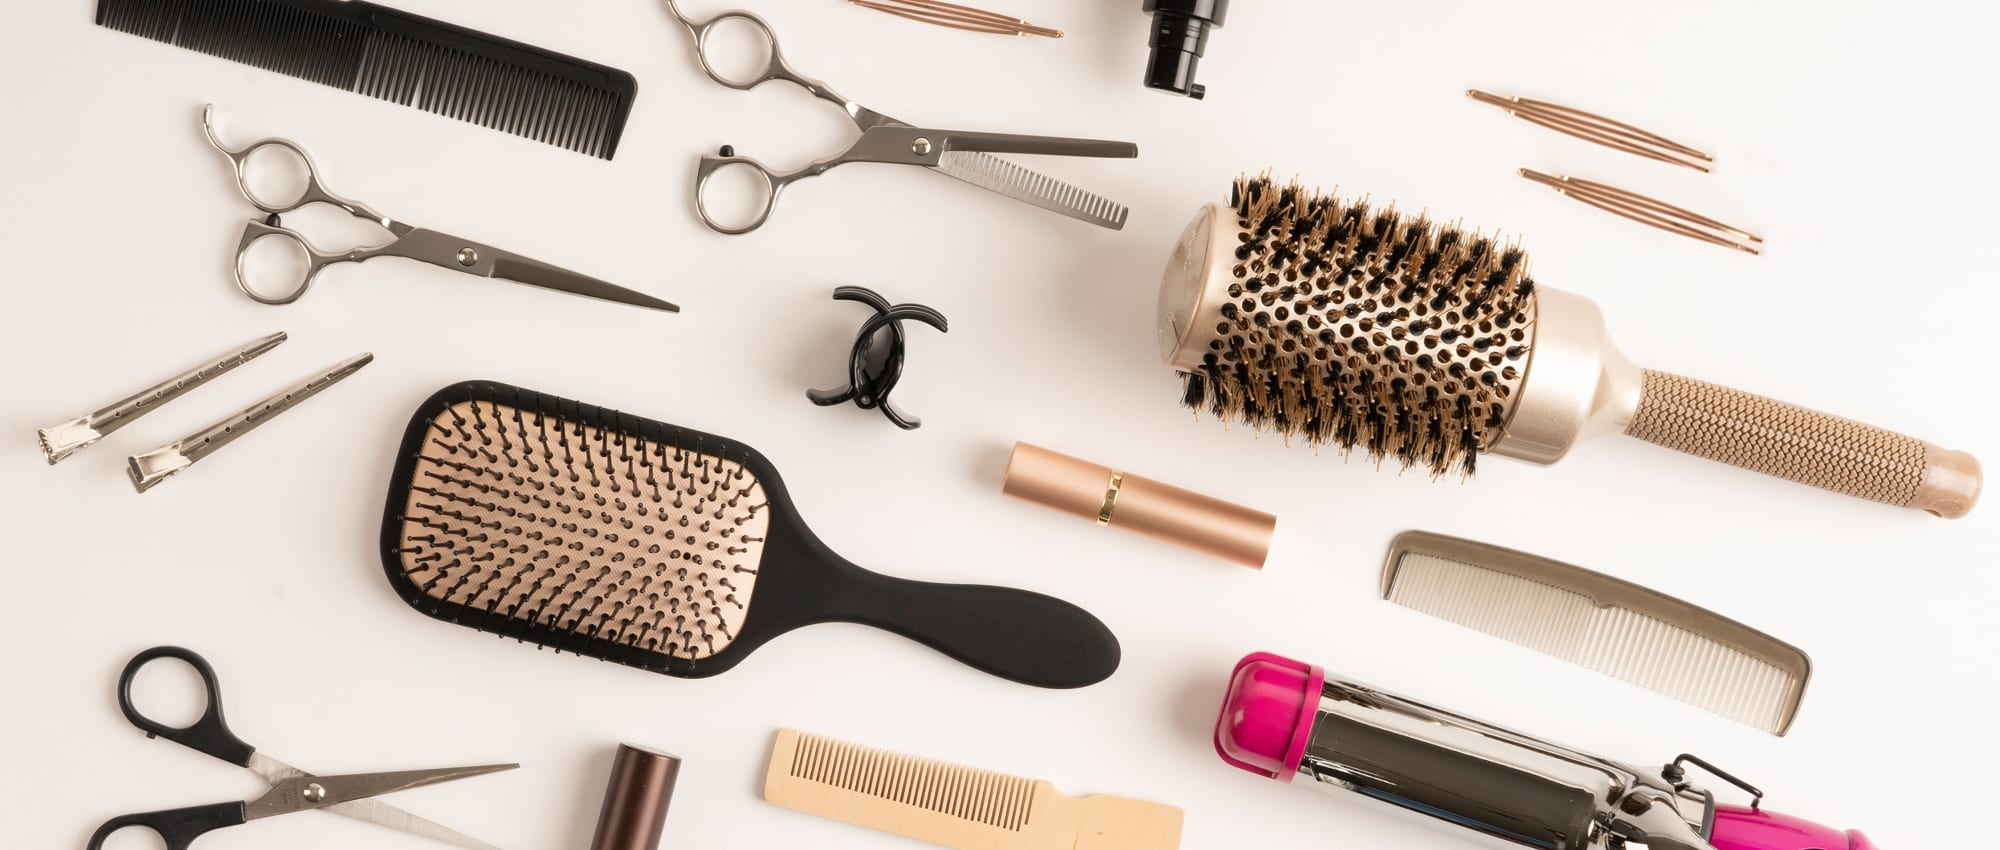 Haircare fulfillment products: brushes, combs, clips, and scissors.